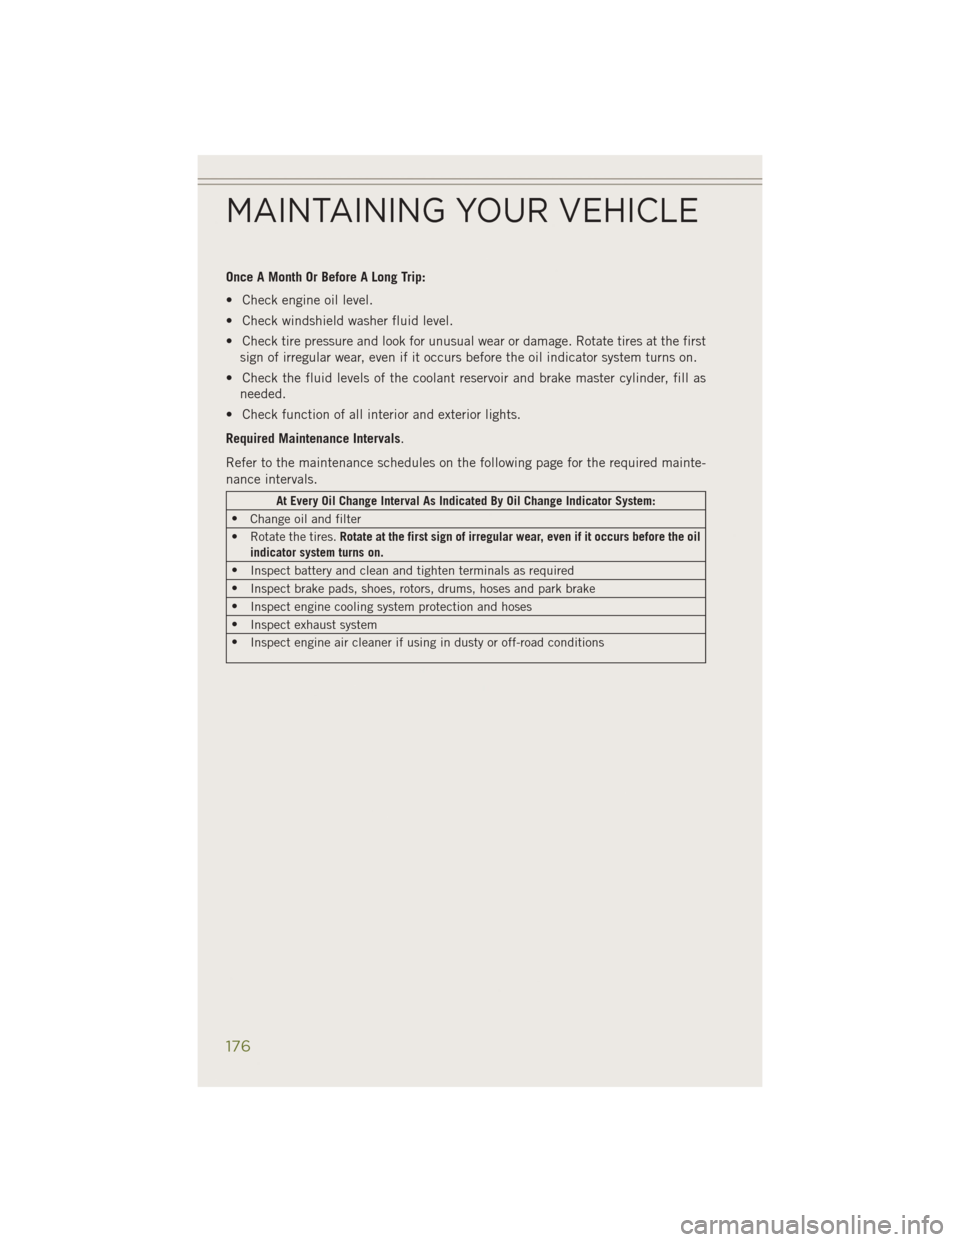 JEEP CHEROKEE 2014 KL / 5.G User Guide, Page 178